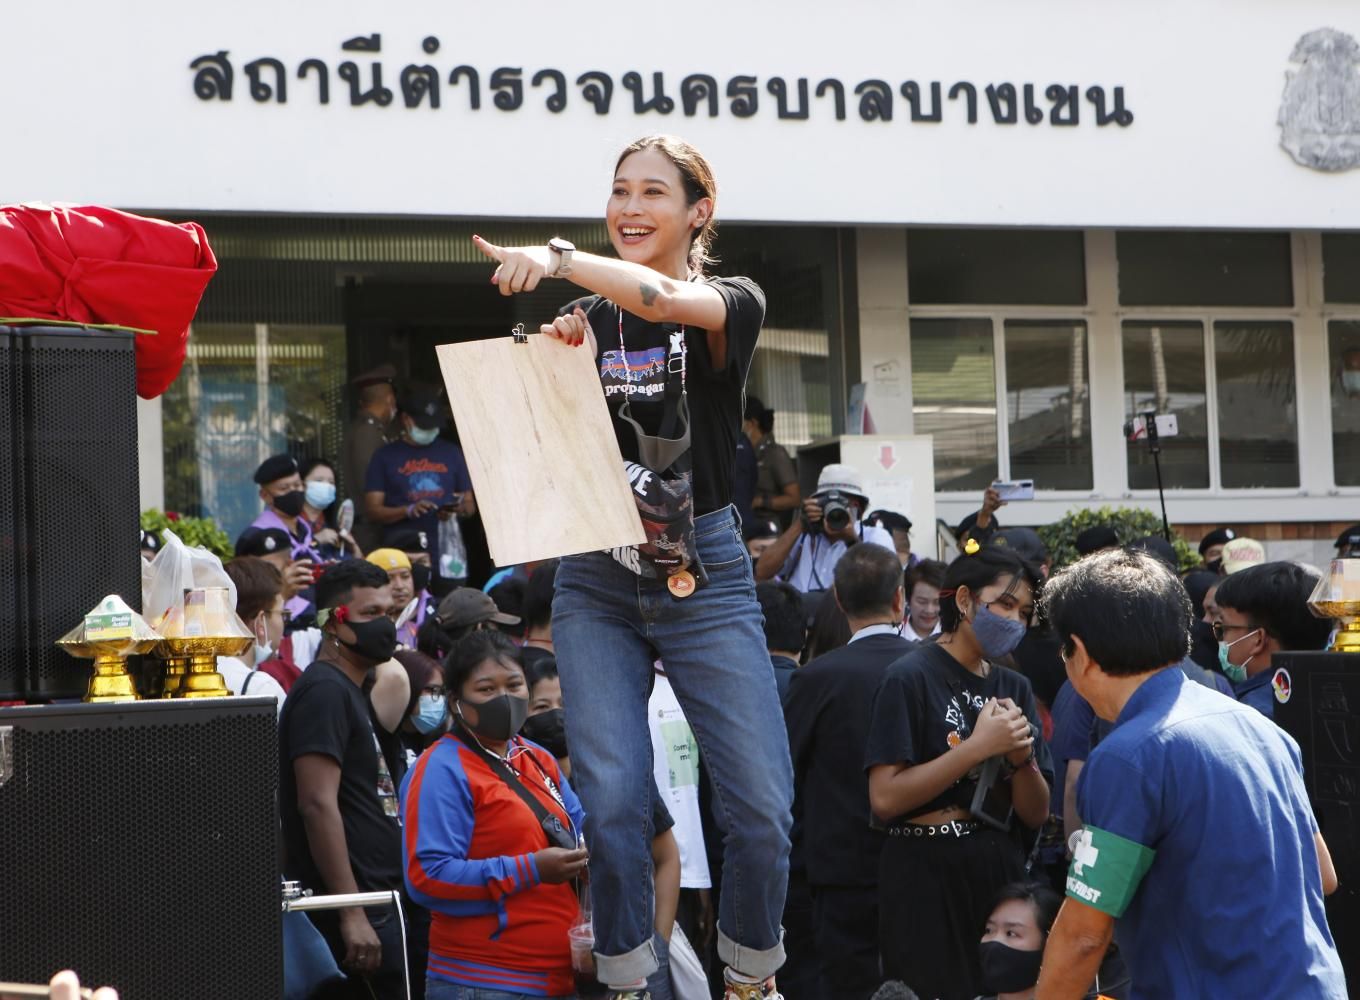 Actress Inthira 'Sai' Charoenpura greets a group of fans who turned up to give her moral support at Bang Khen police station in Bangkok where she was summoned to answer lese majeste charges on Monday.(Photo by Apichit Jinakul)